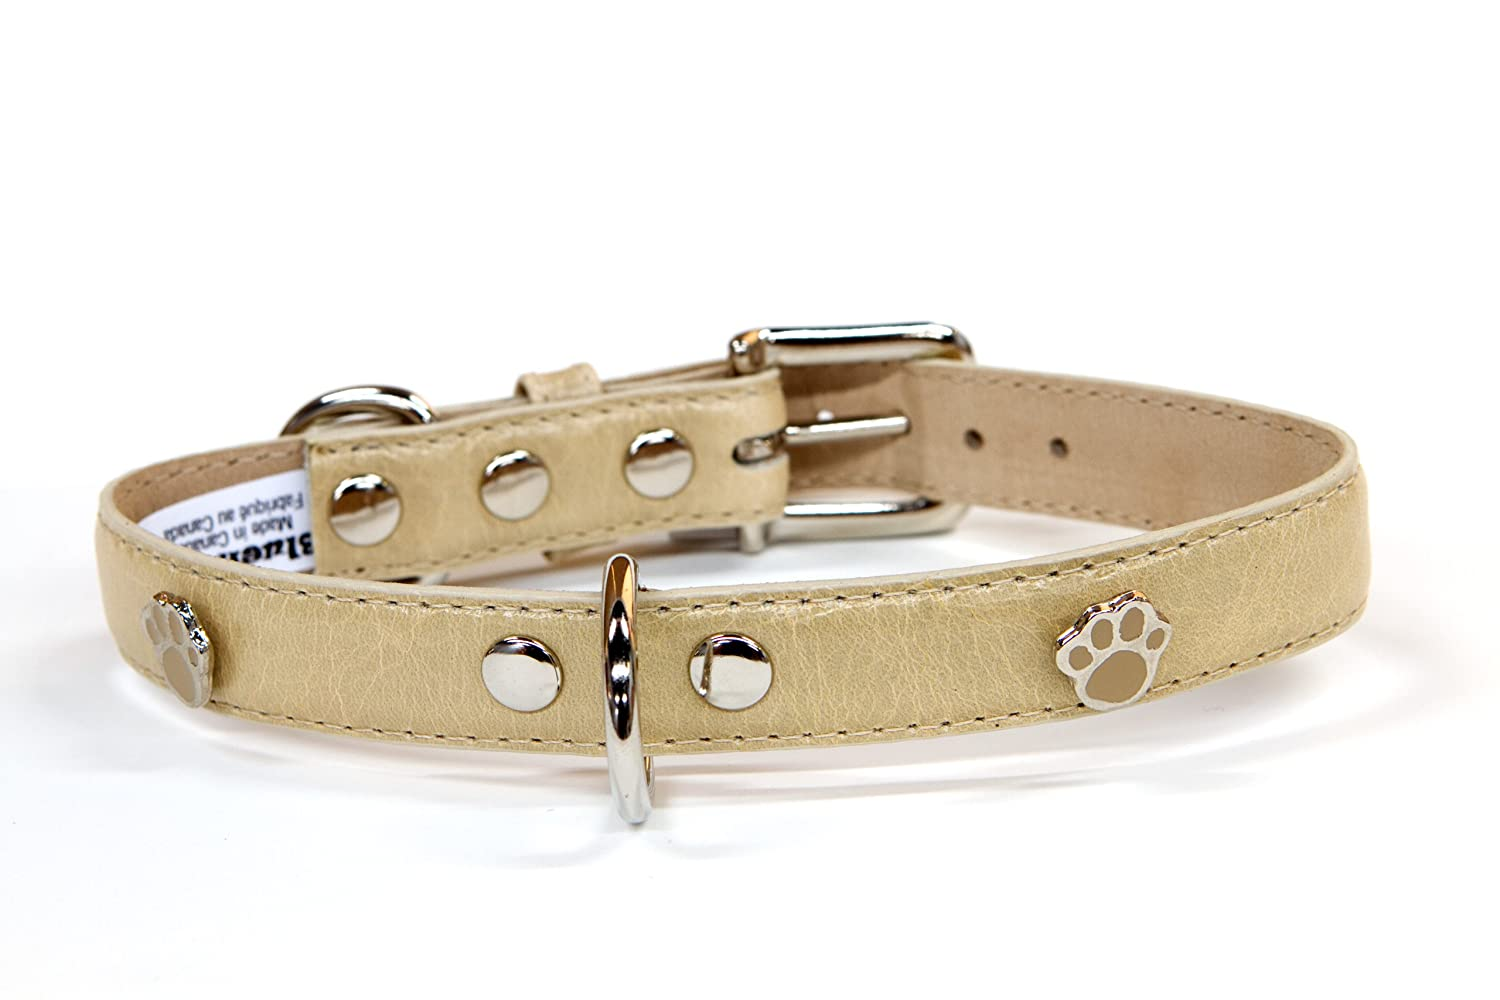 blueemax Genuine Leather Vintage Cow Dog Collar with Paw Stud, 5 8-Inch by 10-Inch, Bone